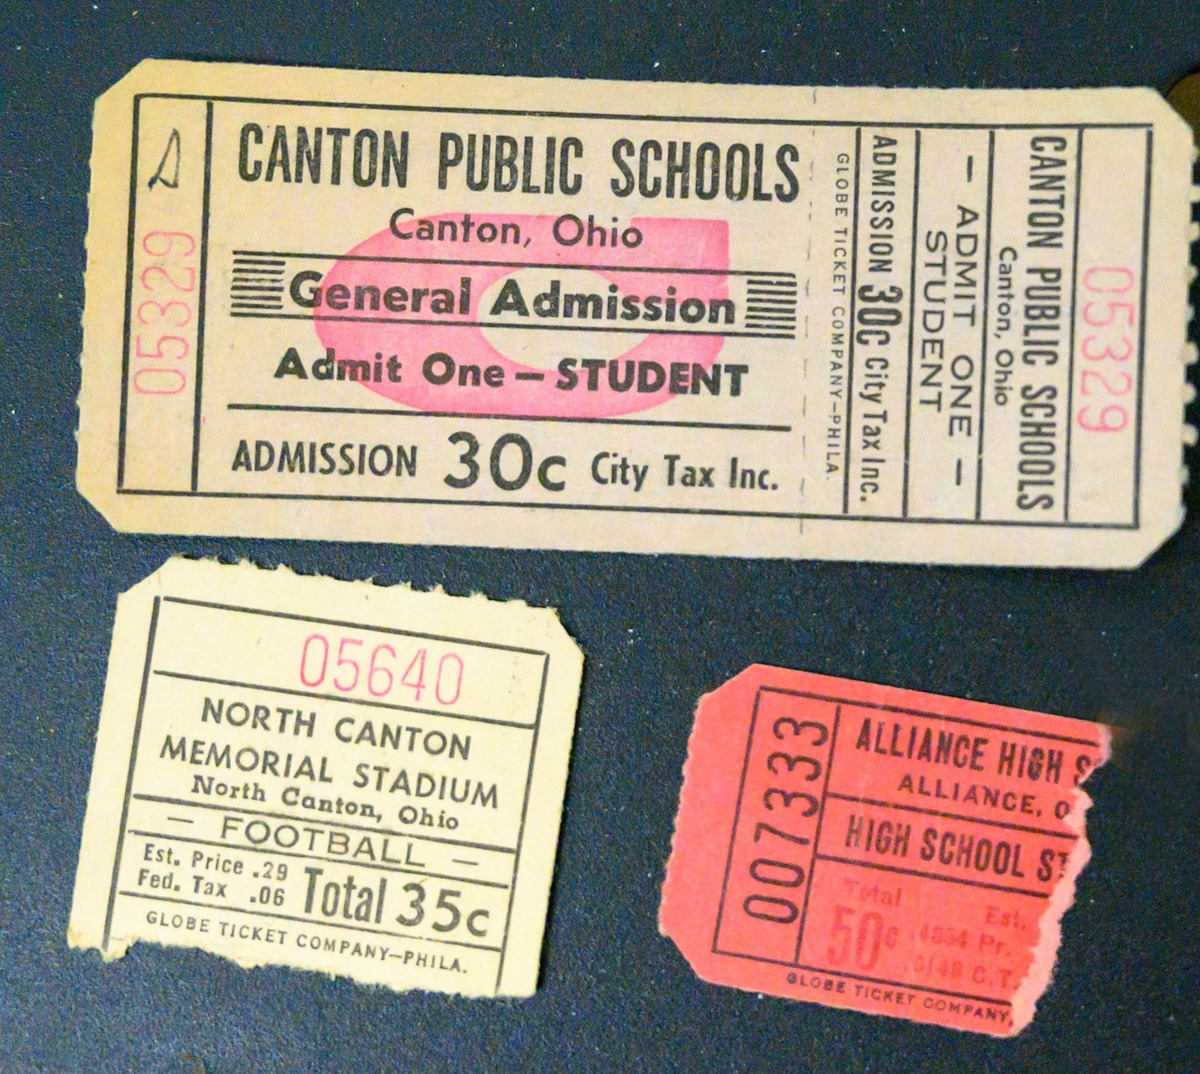 for public schools, admit one ticket